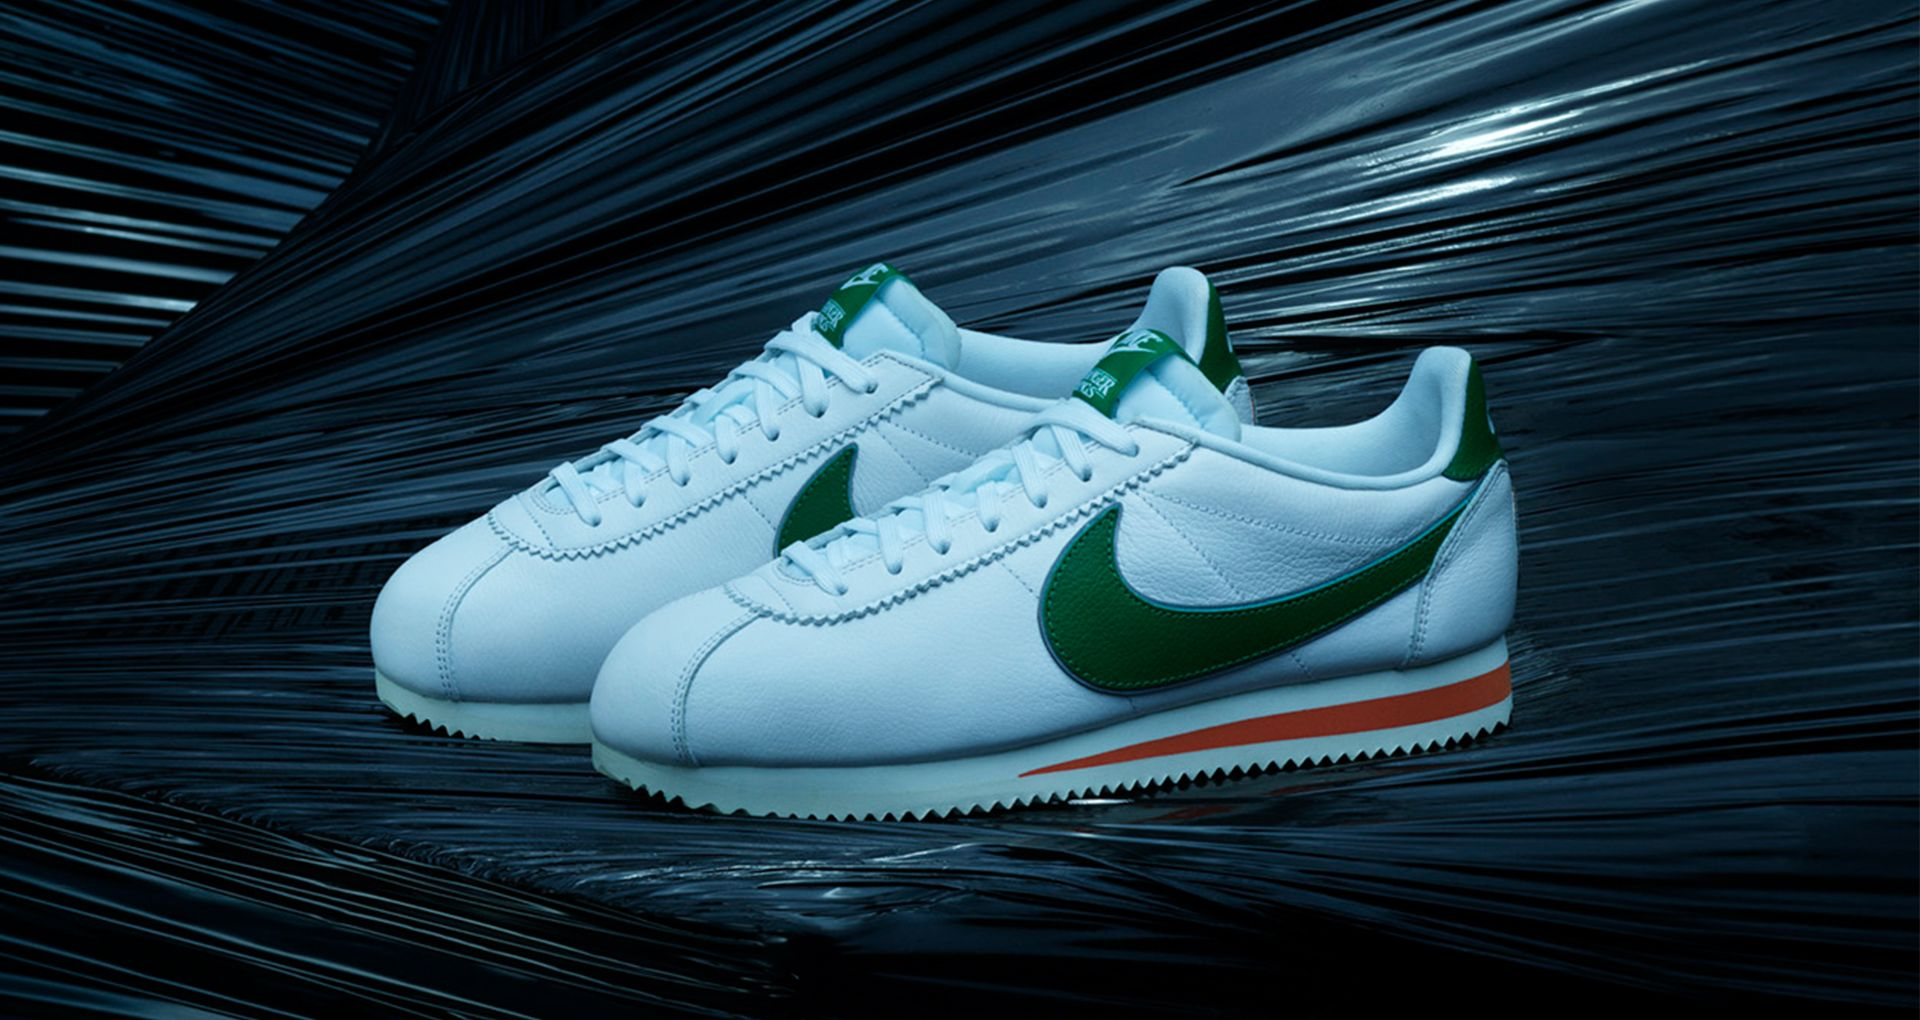 The Nike Air Force 1, Cortez and Blazer Are Getting